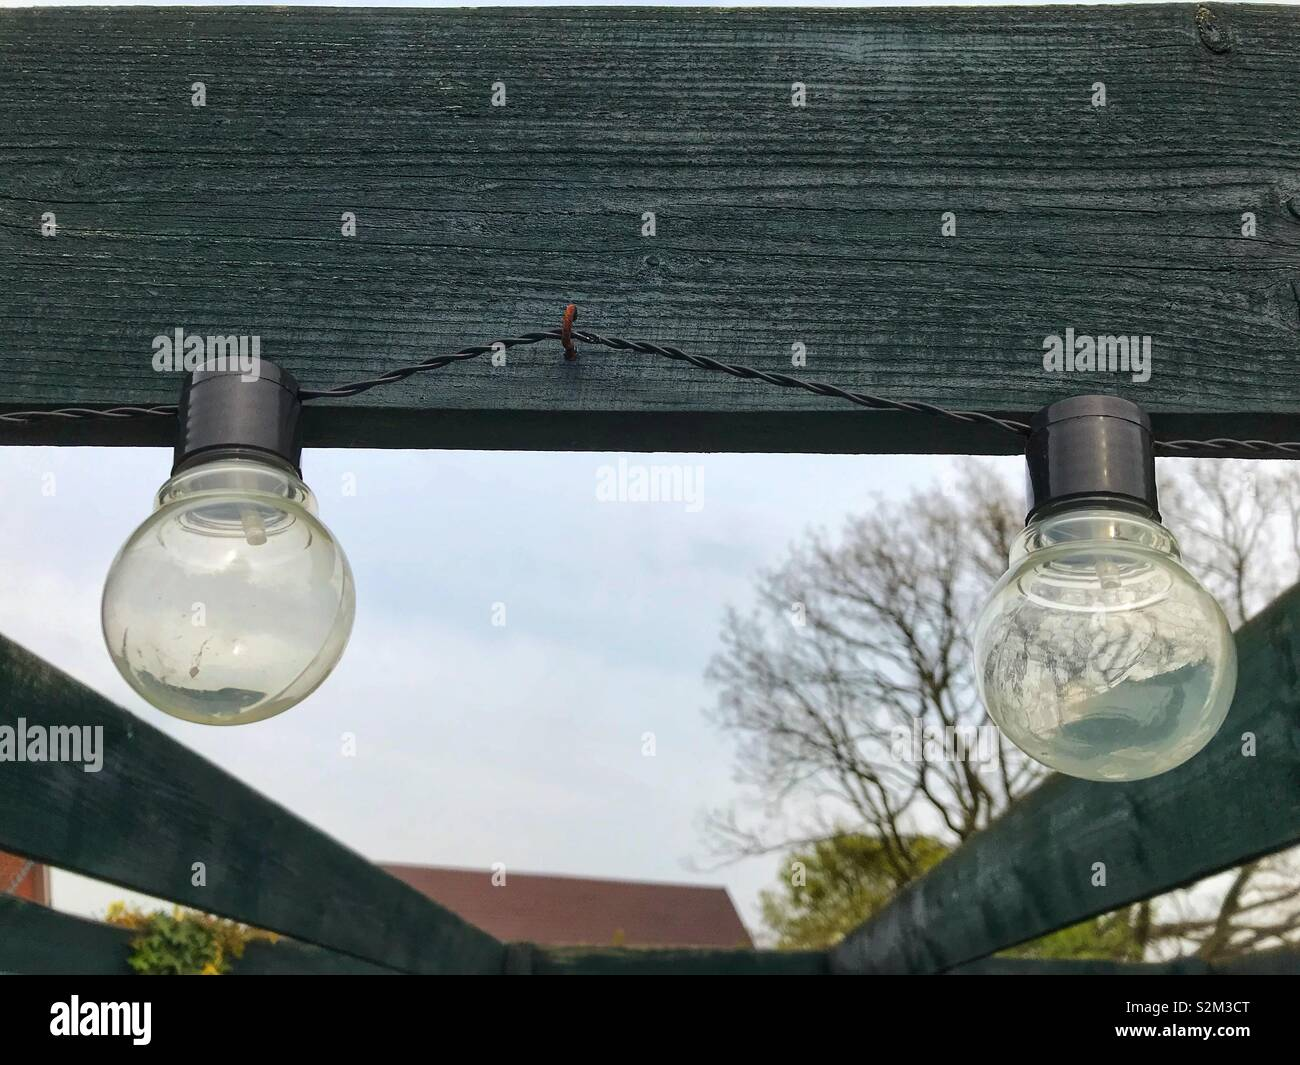 Garden lights hanging from a wooden beam in a garden. - Stock Image